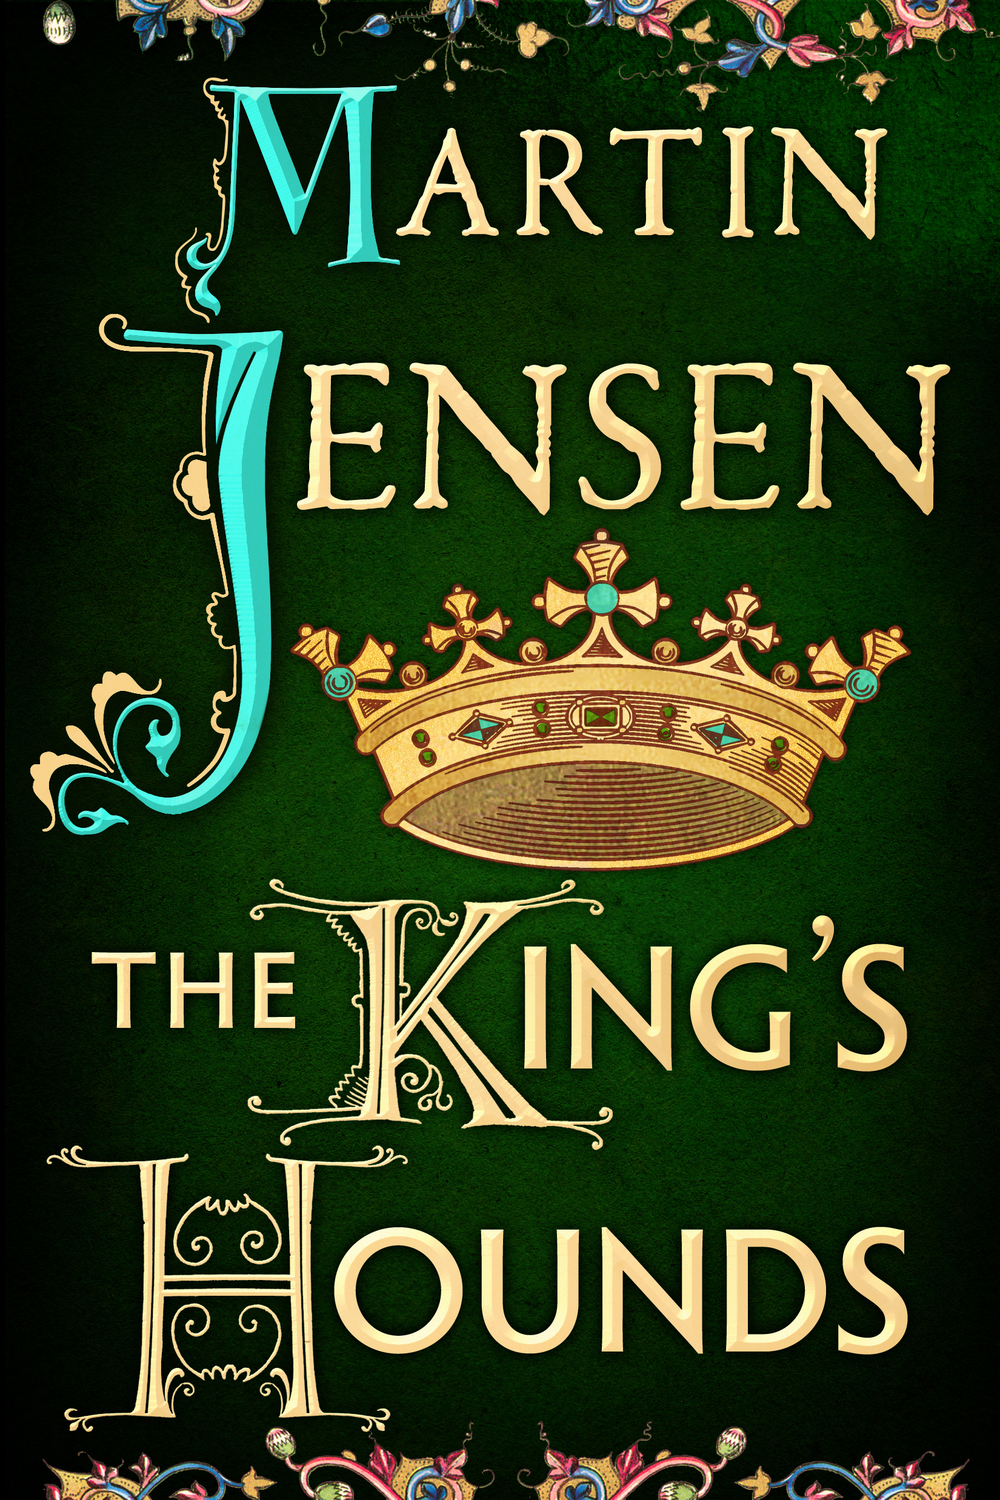 THE KING'S HOUNDS (final jacket).jpg